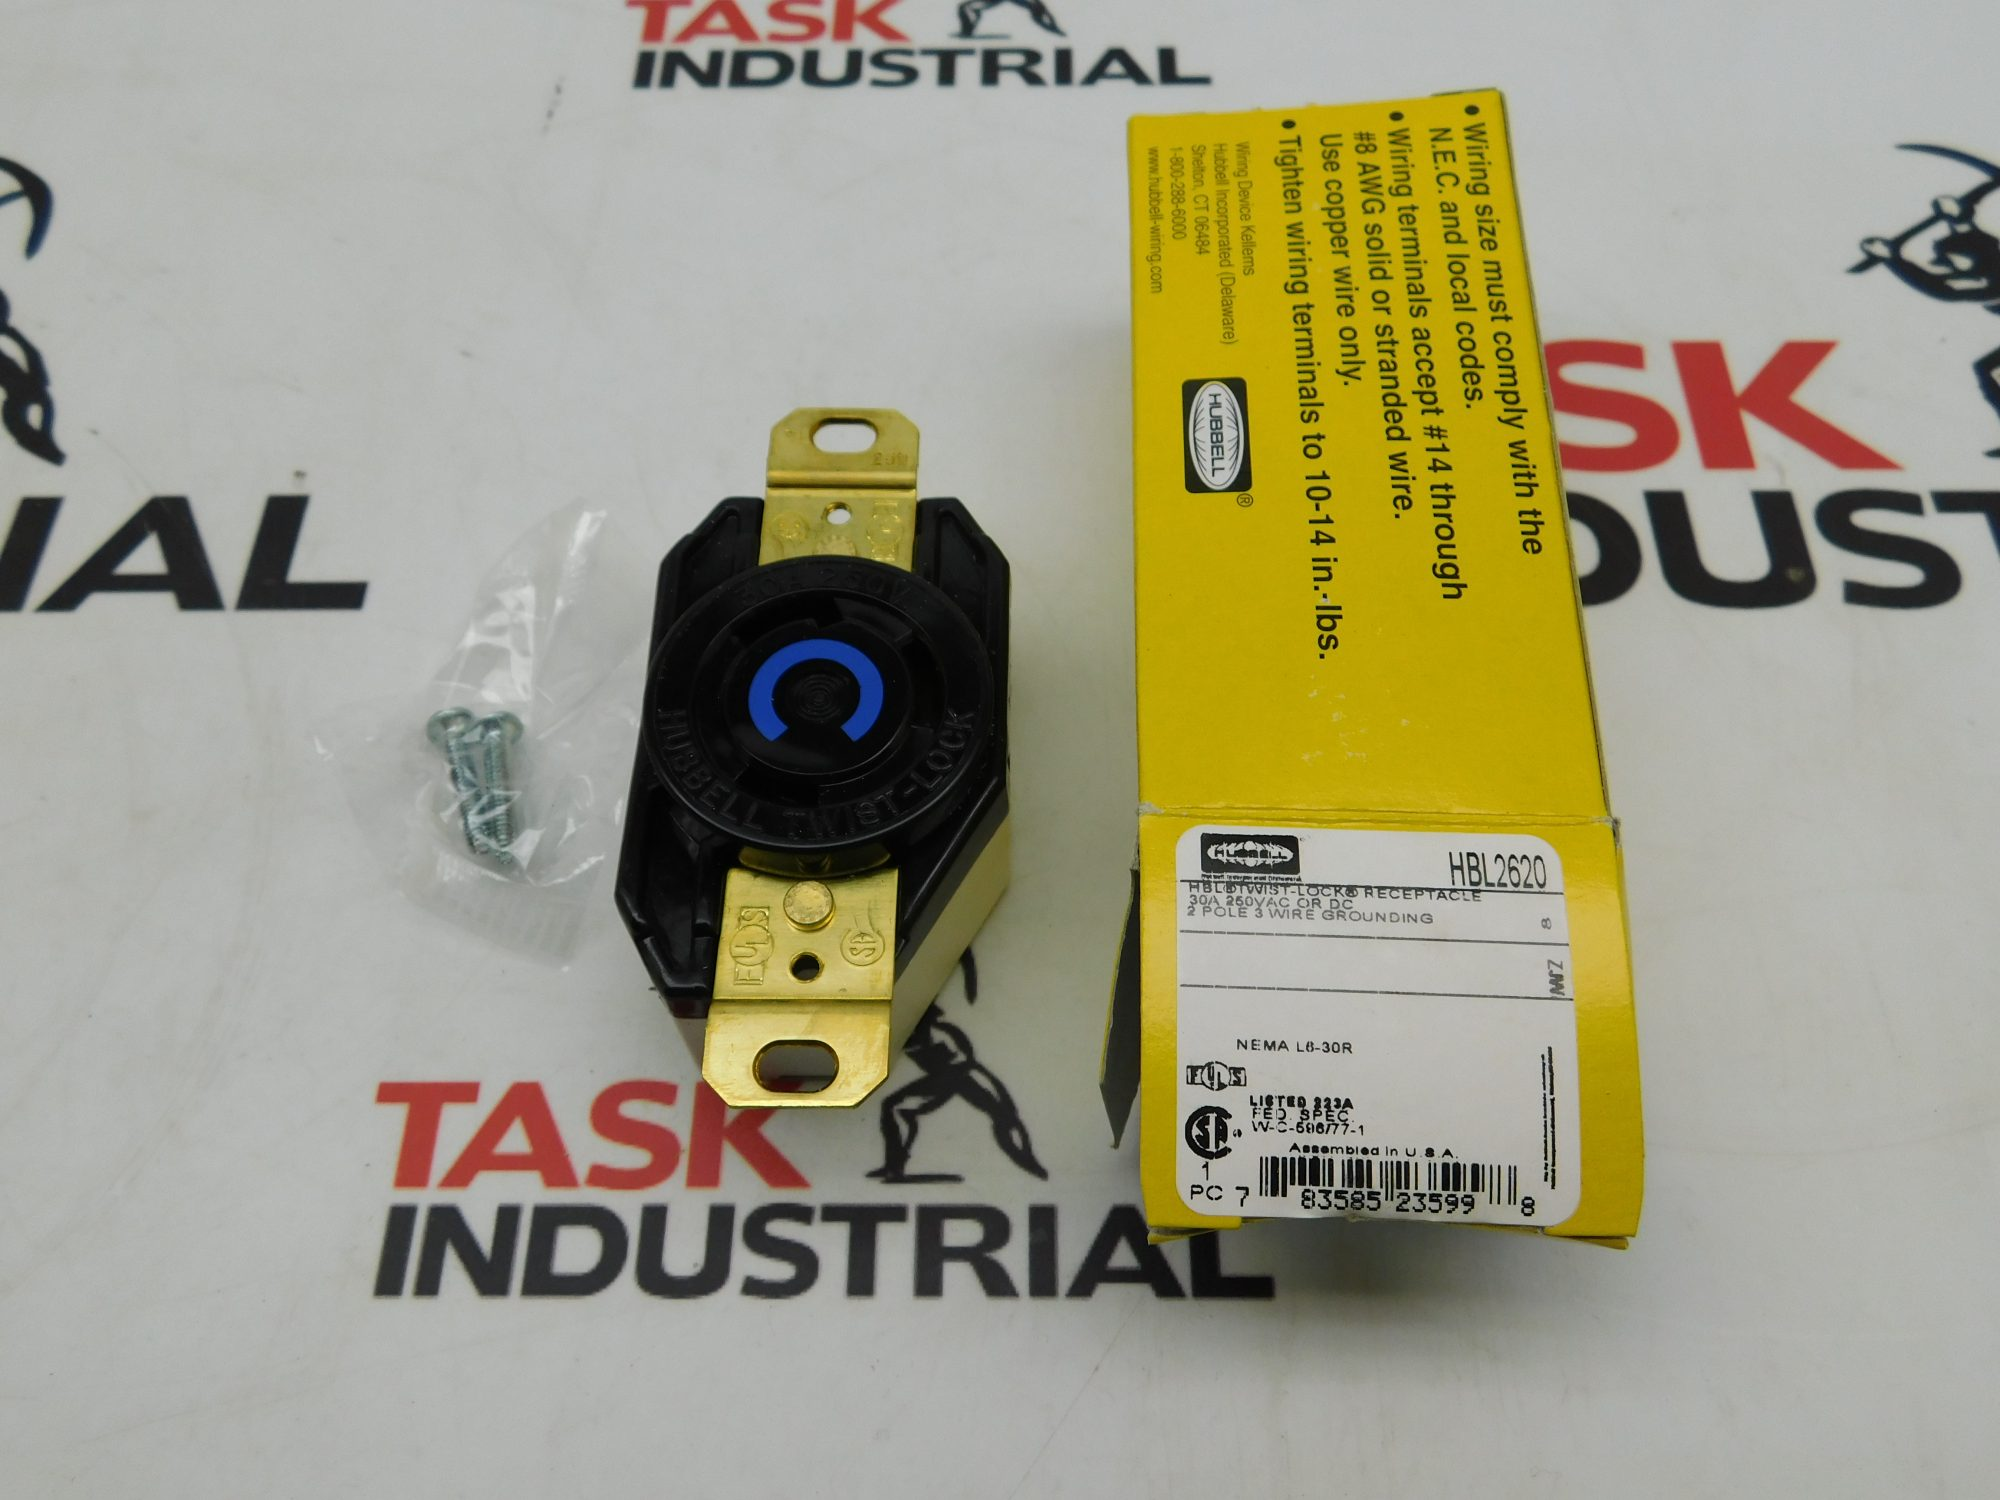 hight resolution of case of 10 hubbell hbl2620 2p 3 wire 30a 250 vac vdc receptacle twist lock